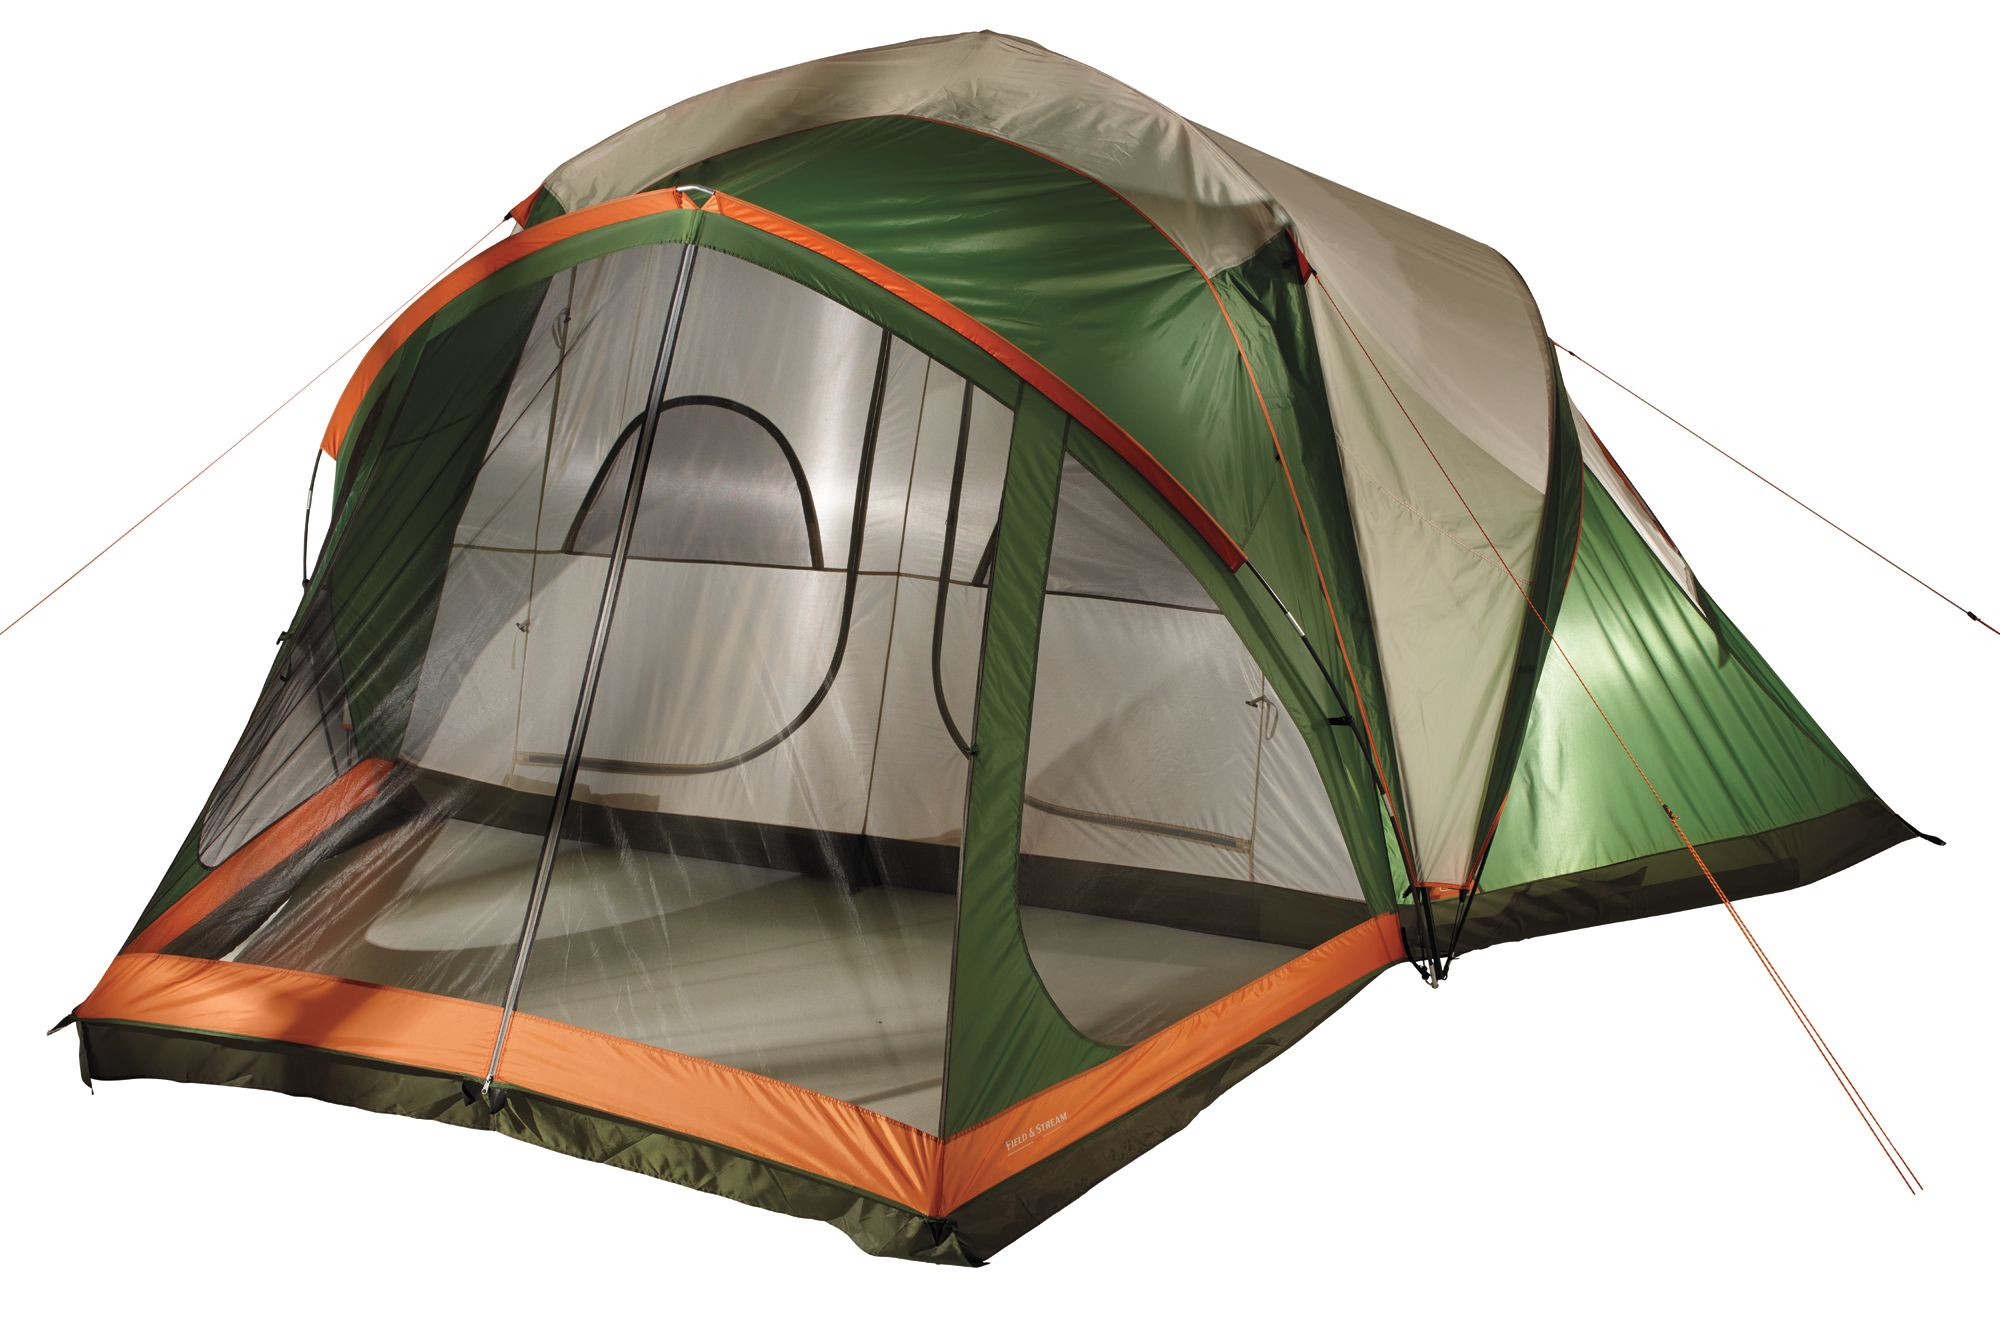 Product Image · Field u0026 Stream Forest Ridge 8 Person Cabin Tent  sc 1 st  DICKu0027S Sporting Goods & Tents for Sale | Best Price Guarantee at DICKu0027S